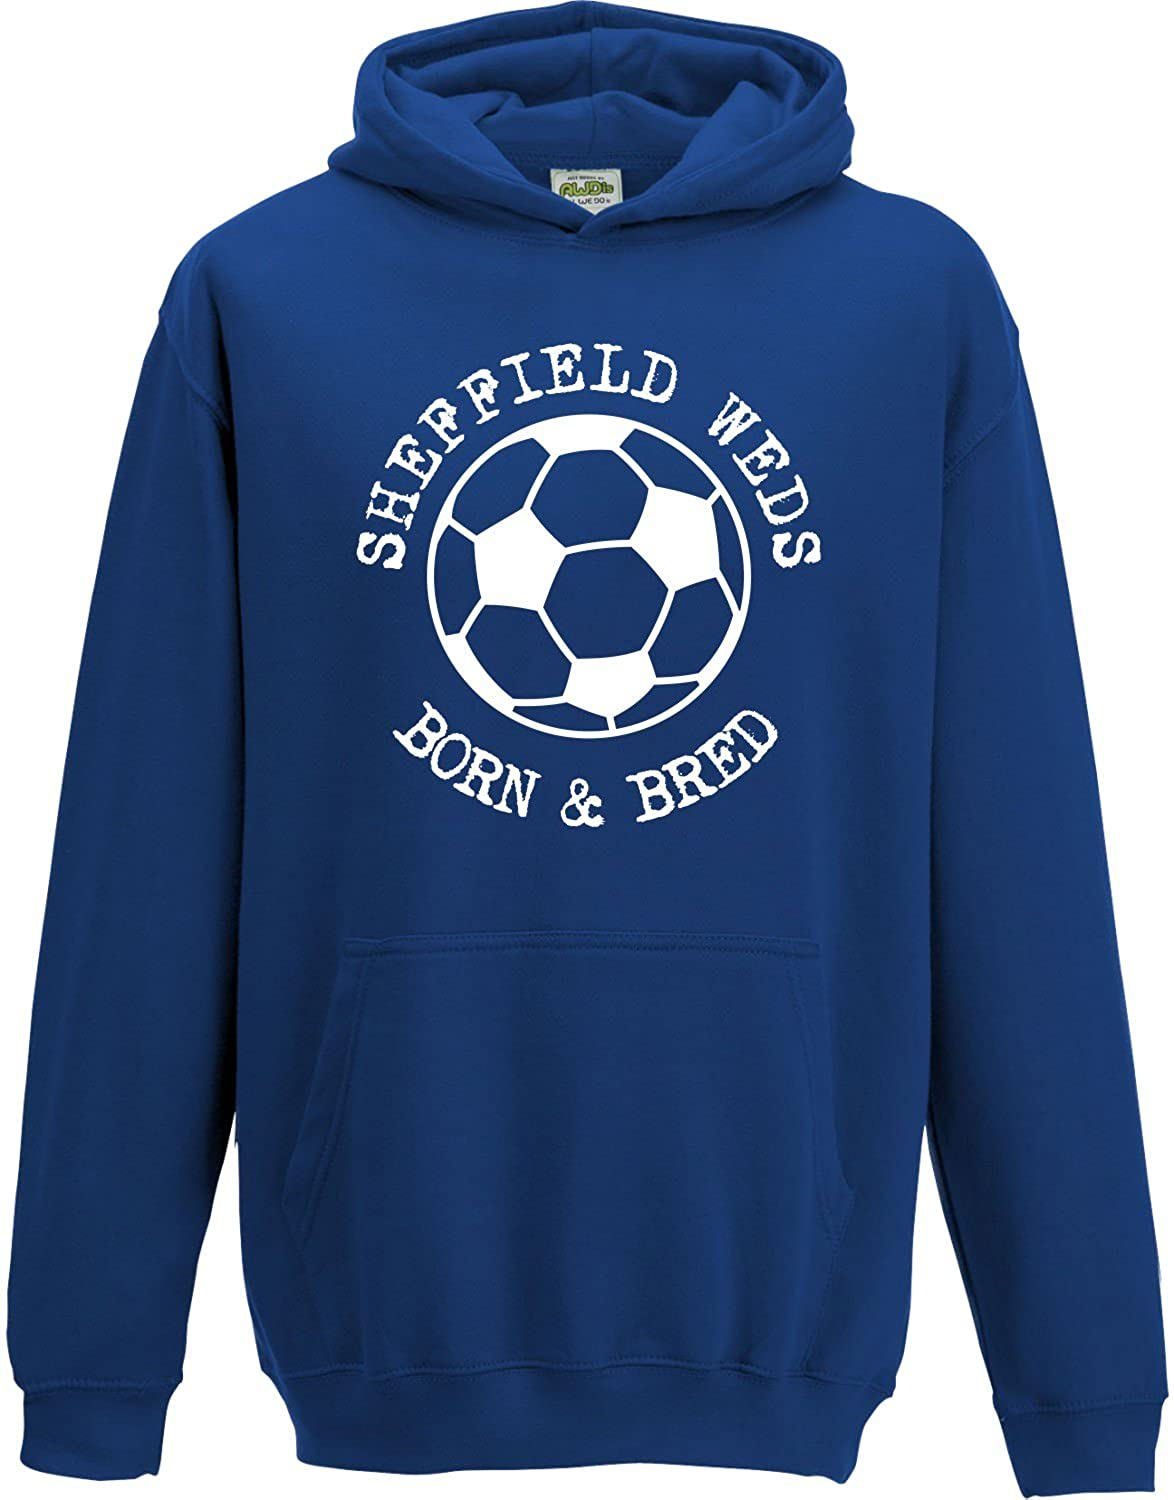 Hat-Trick Designs Sheffield Wednesday Football Baby/Kids/Childrens Hoodie Sweatshirt-Royal Blue-Born & Bred-Unisex Gift